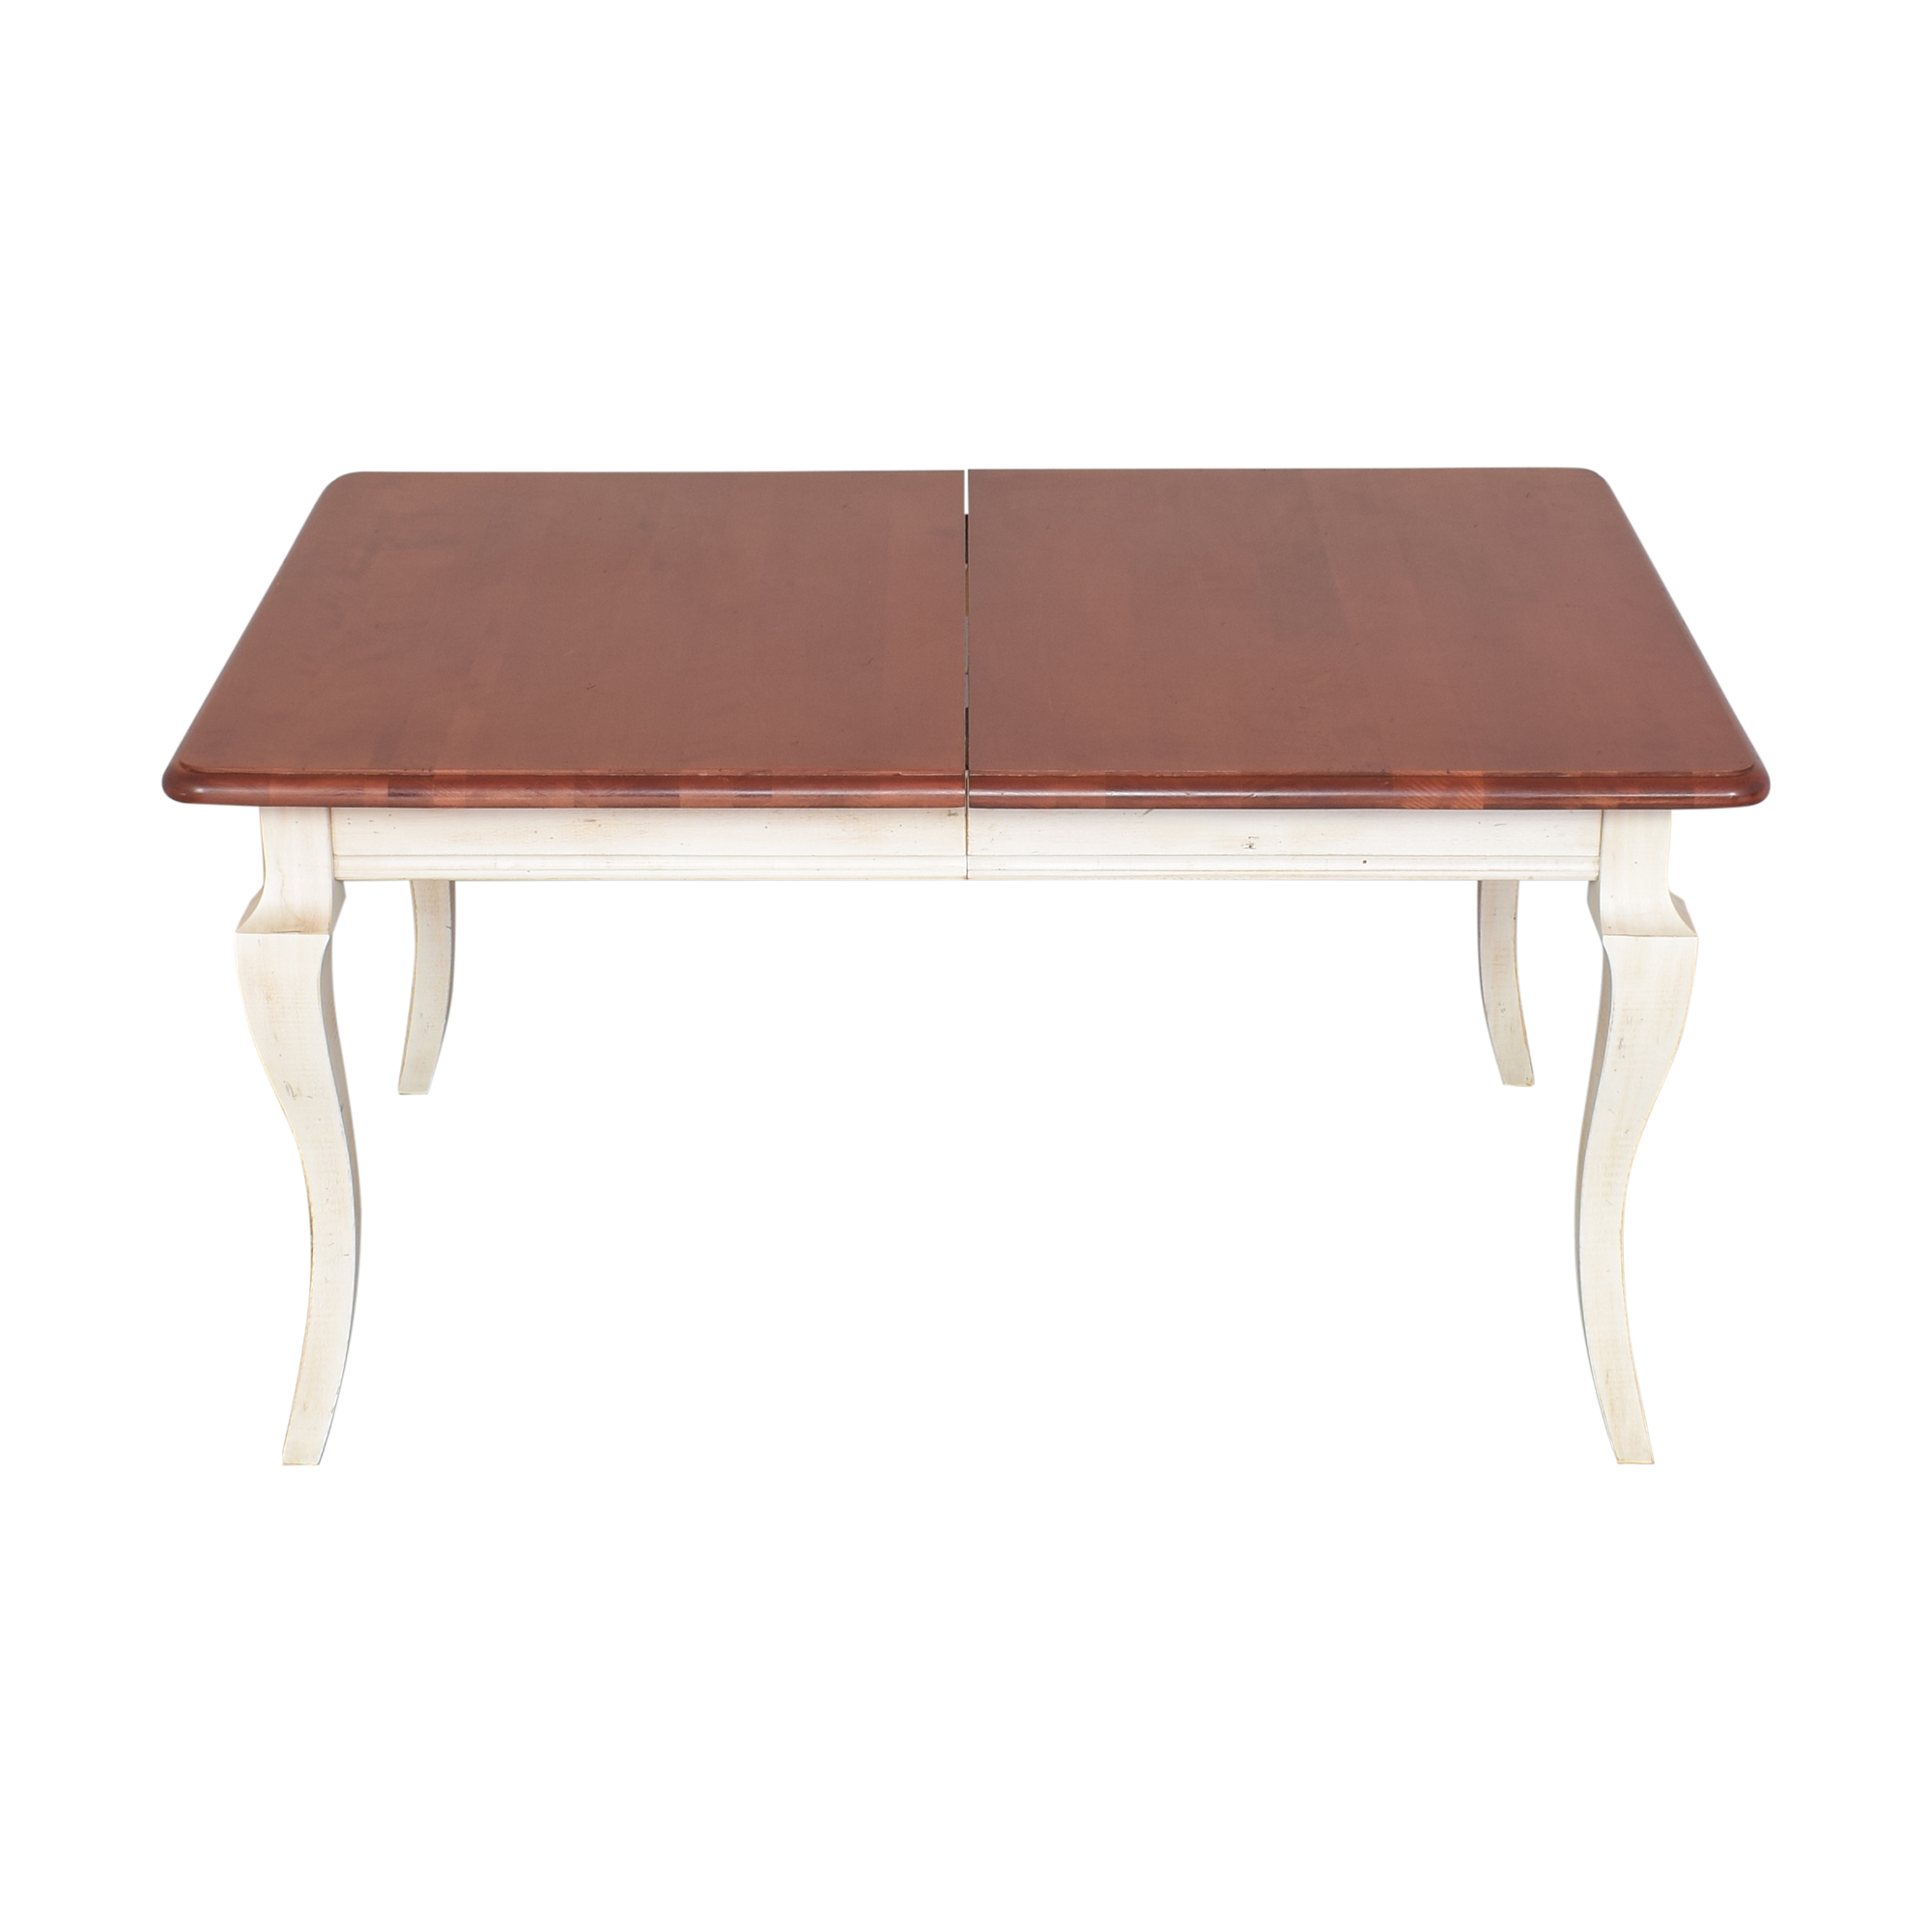 Domain Country French Extendable Dining Table / Dinner Tables